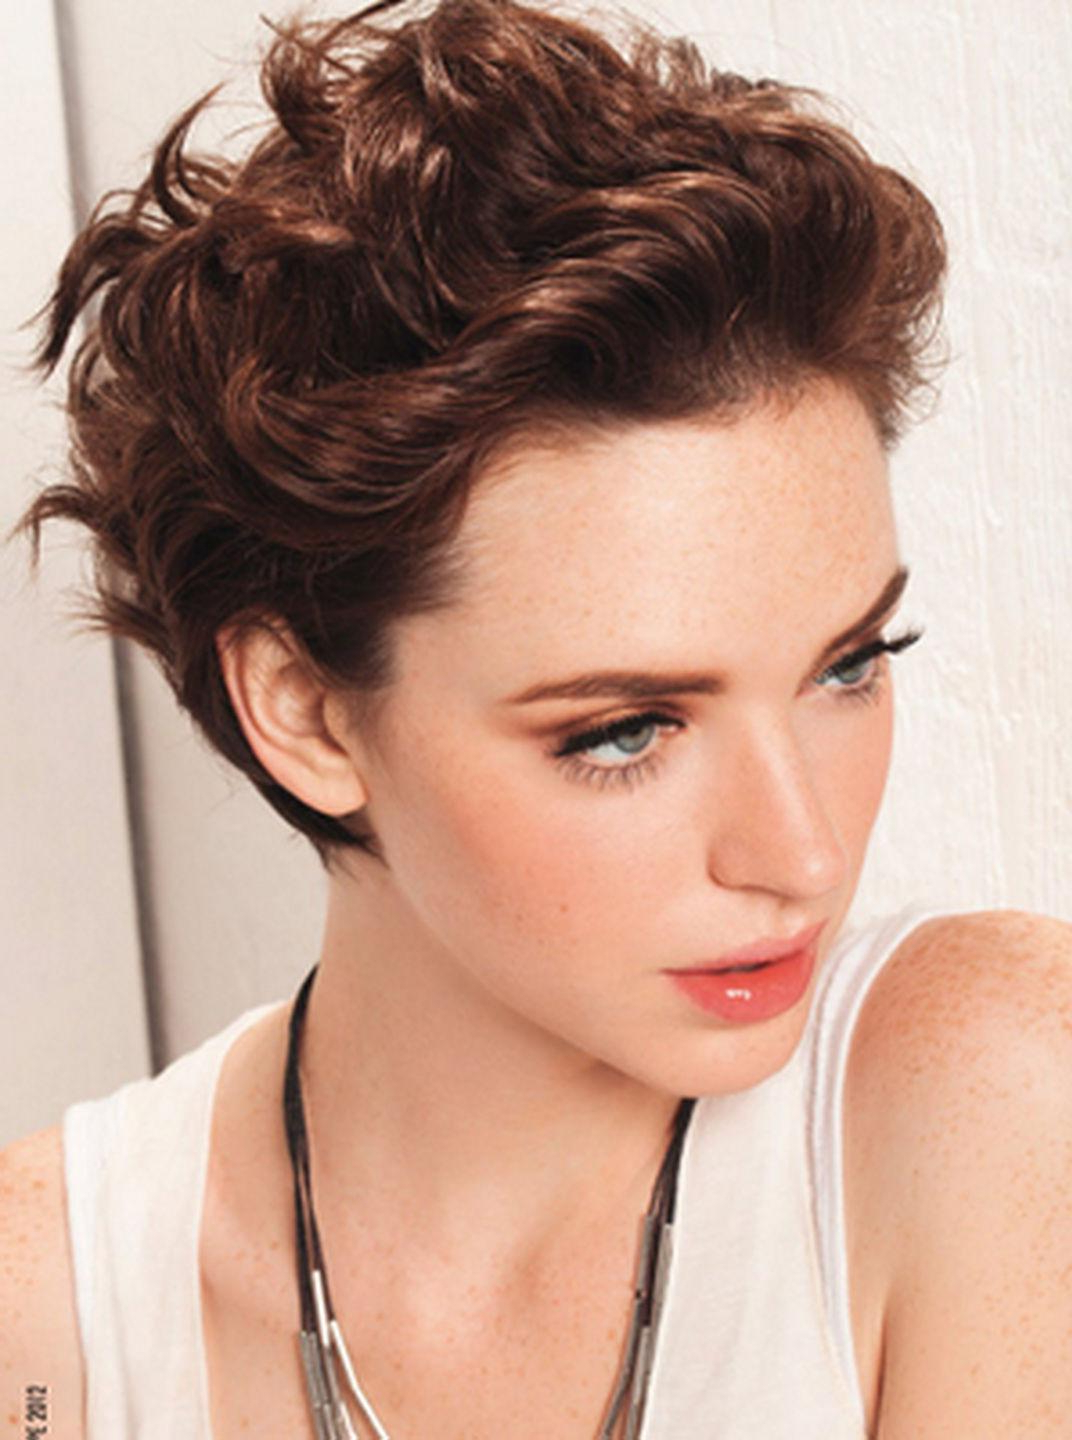 Short Hairstyles For Thick Curly Hair – Leymatson Regarding Short Hairstyles For Ladies With Curly Hair (View 24 of 25)